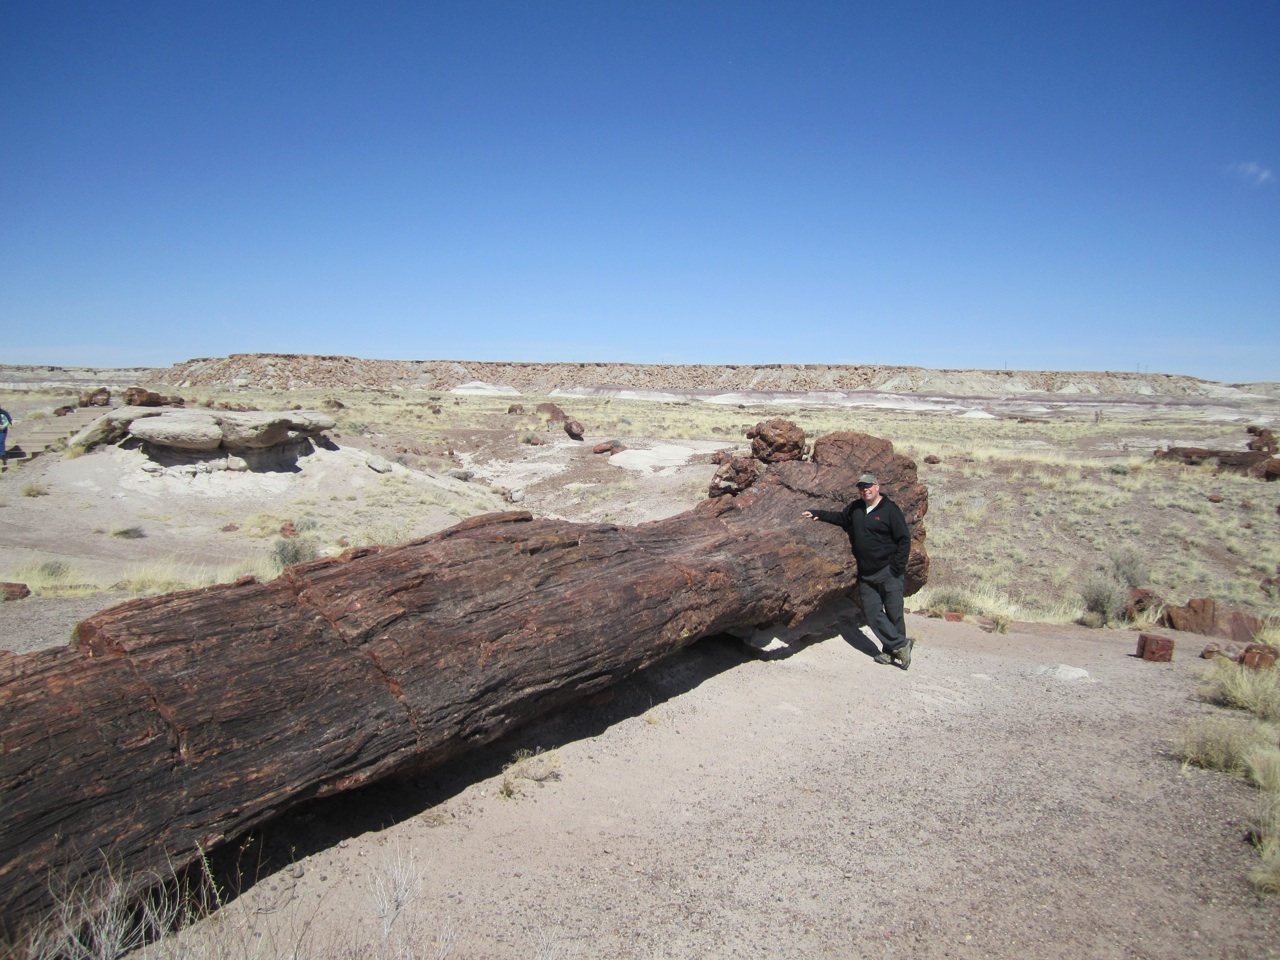 David And The Same Petrified Tree, Shows You How Long And Big This Tree Was